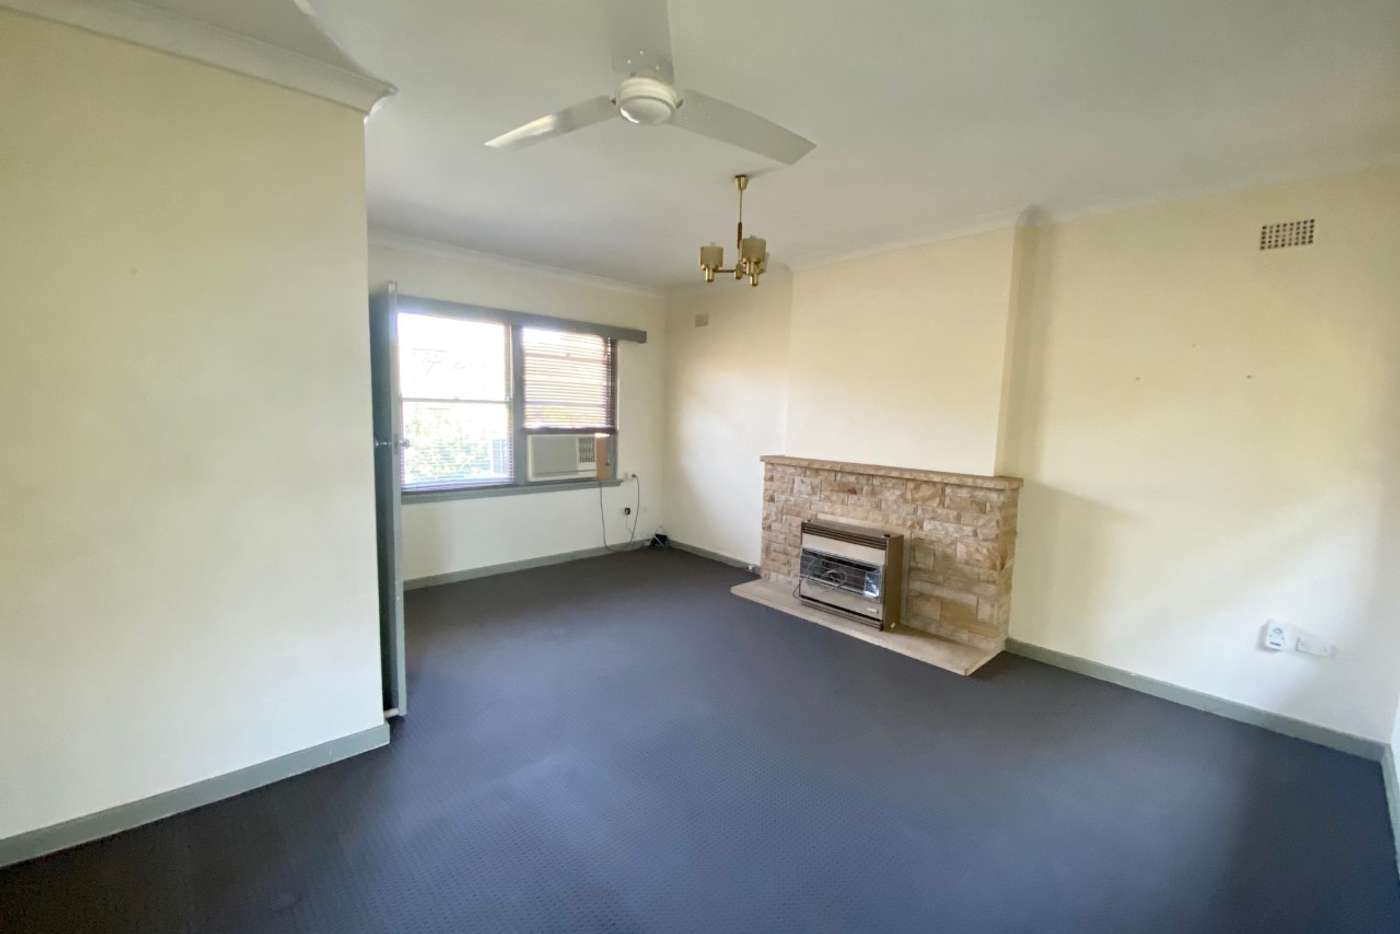 Main view of Homely house listing, 10 Driver Street, Denistone West NSW 2114